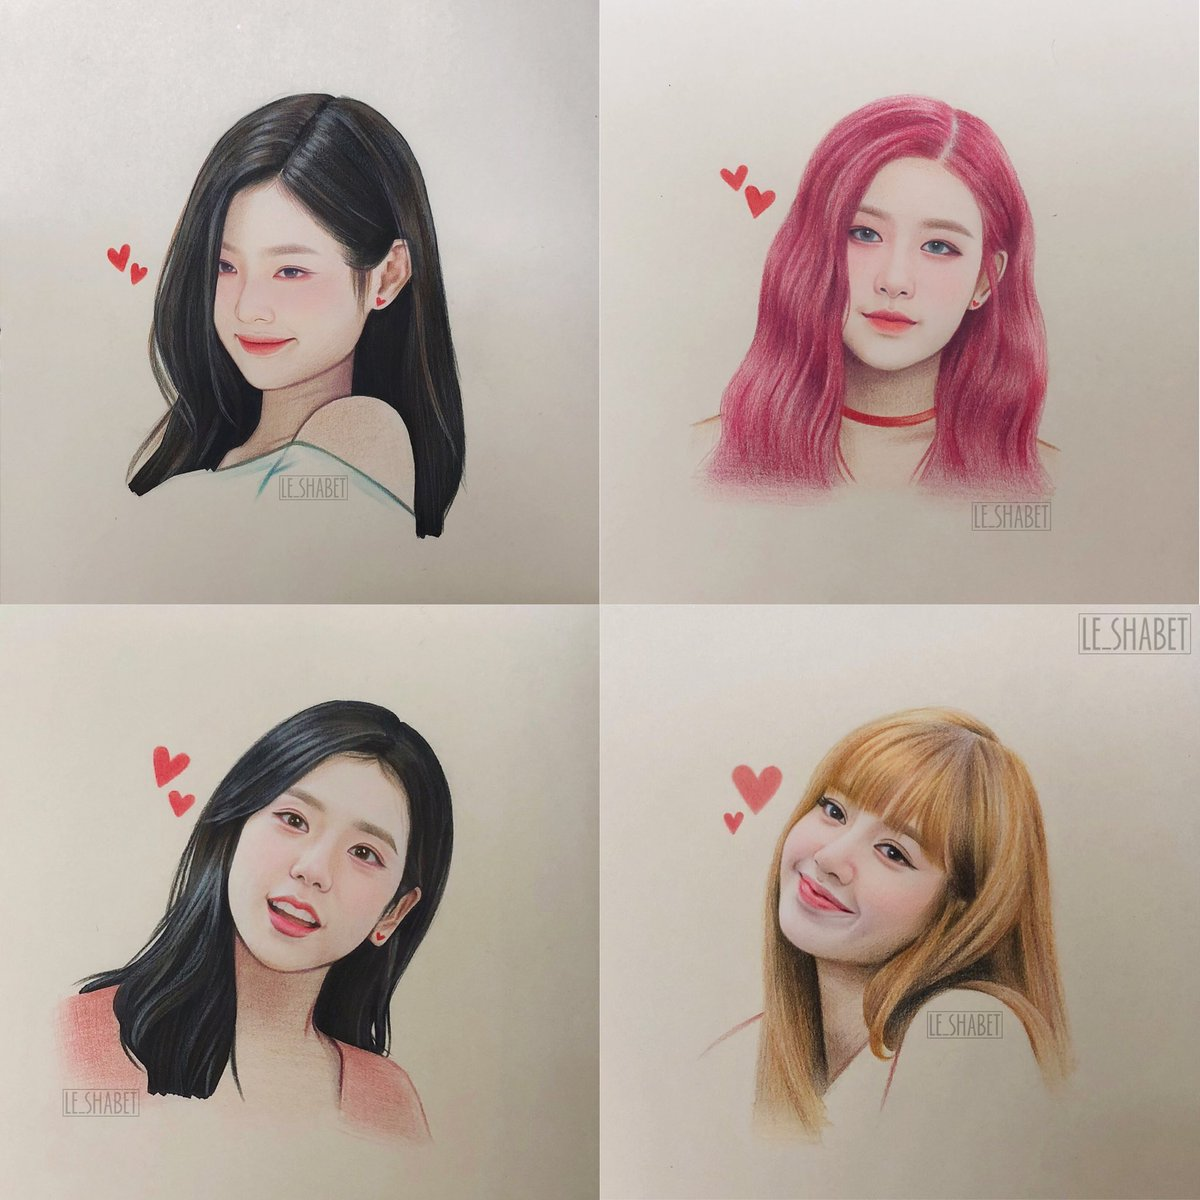 My Blackpink fan art collection part 2, which is your fav ?#blackpink  #블랙핑크 #blackpinkfanart #lisa #rosé⁠ ⁠ #jennie #jisoo